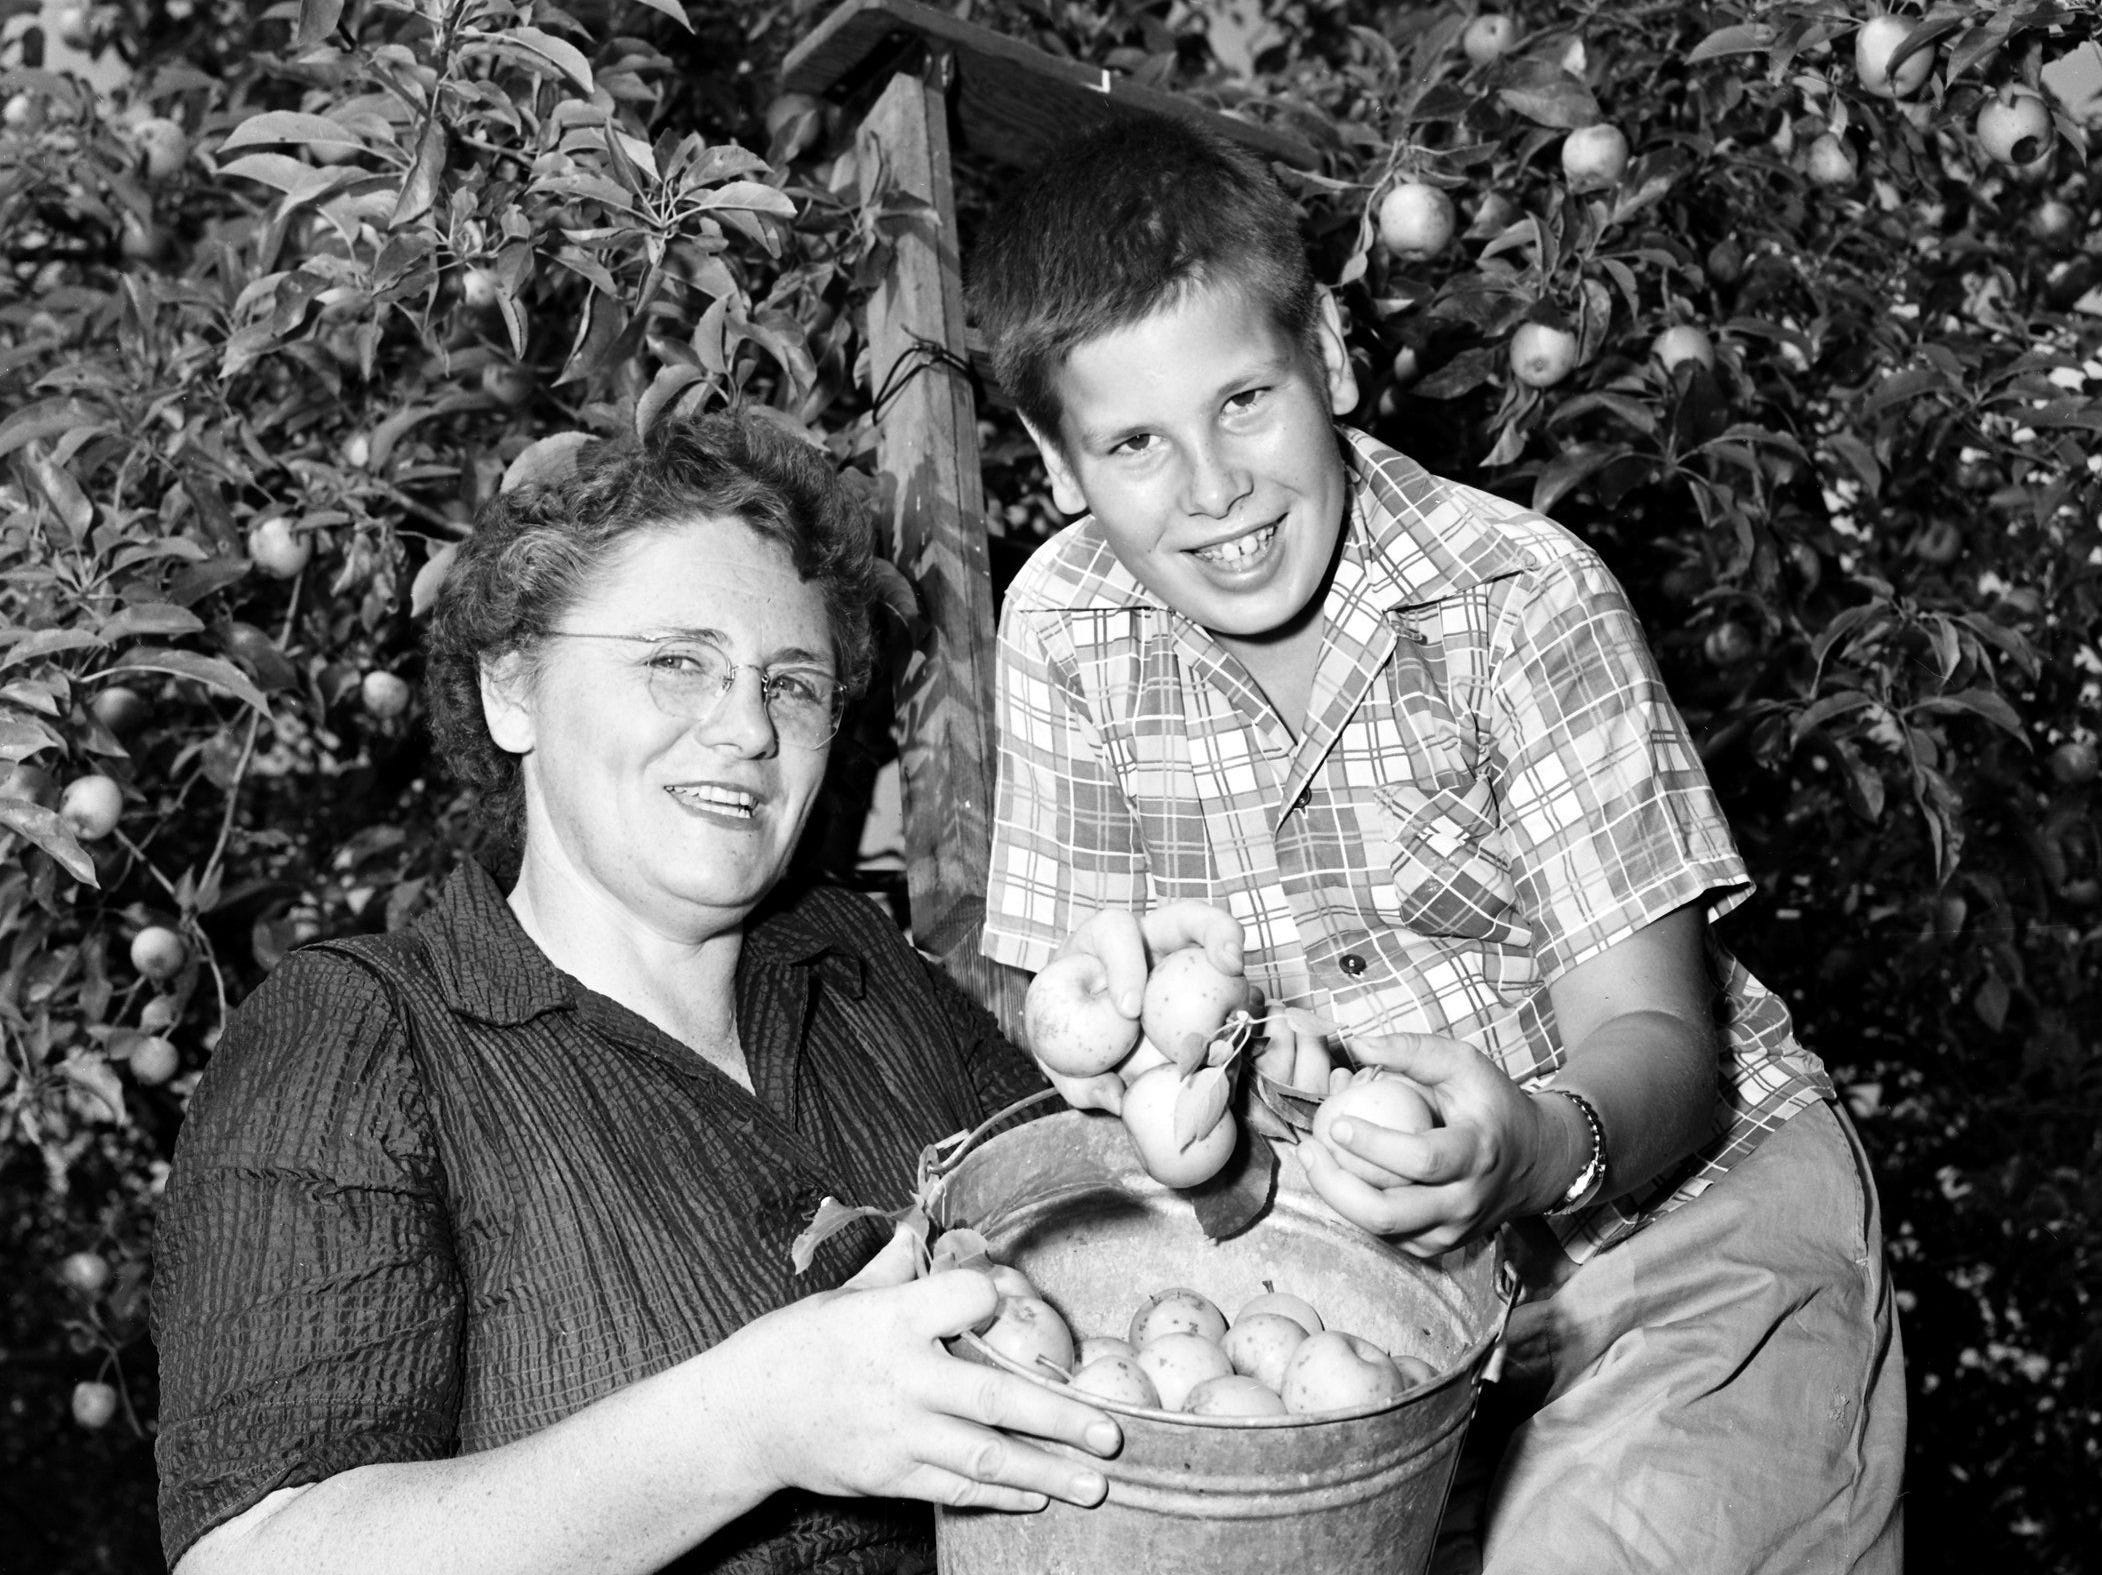 Mr. and Mrs. Burt P. Johnson acquired 20 apple trees in the bargain when they bought their home at 393 Colonial Road. Here, Mrs. Johnson and son Richard display one of the many pails of apples they picked from the trees in August 1953.